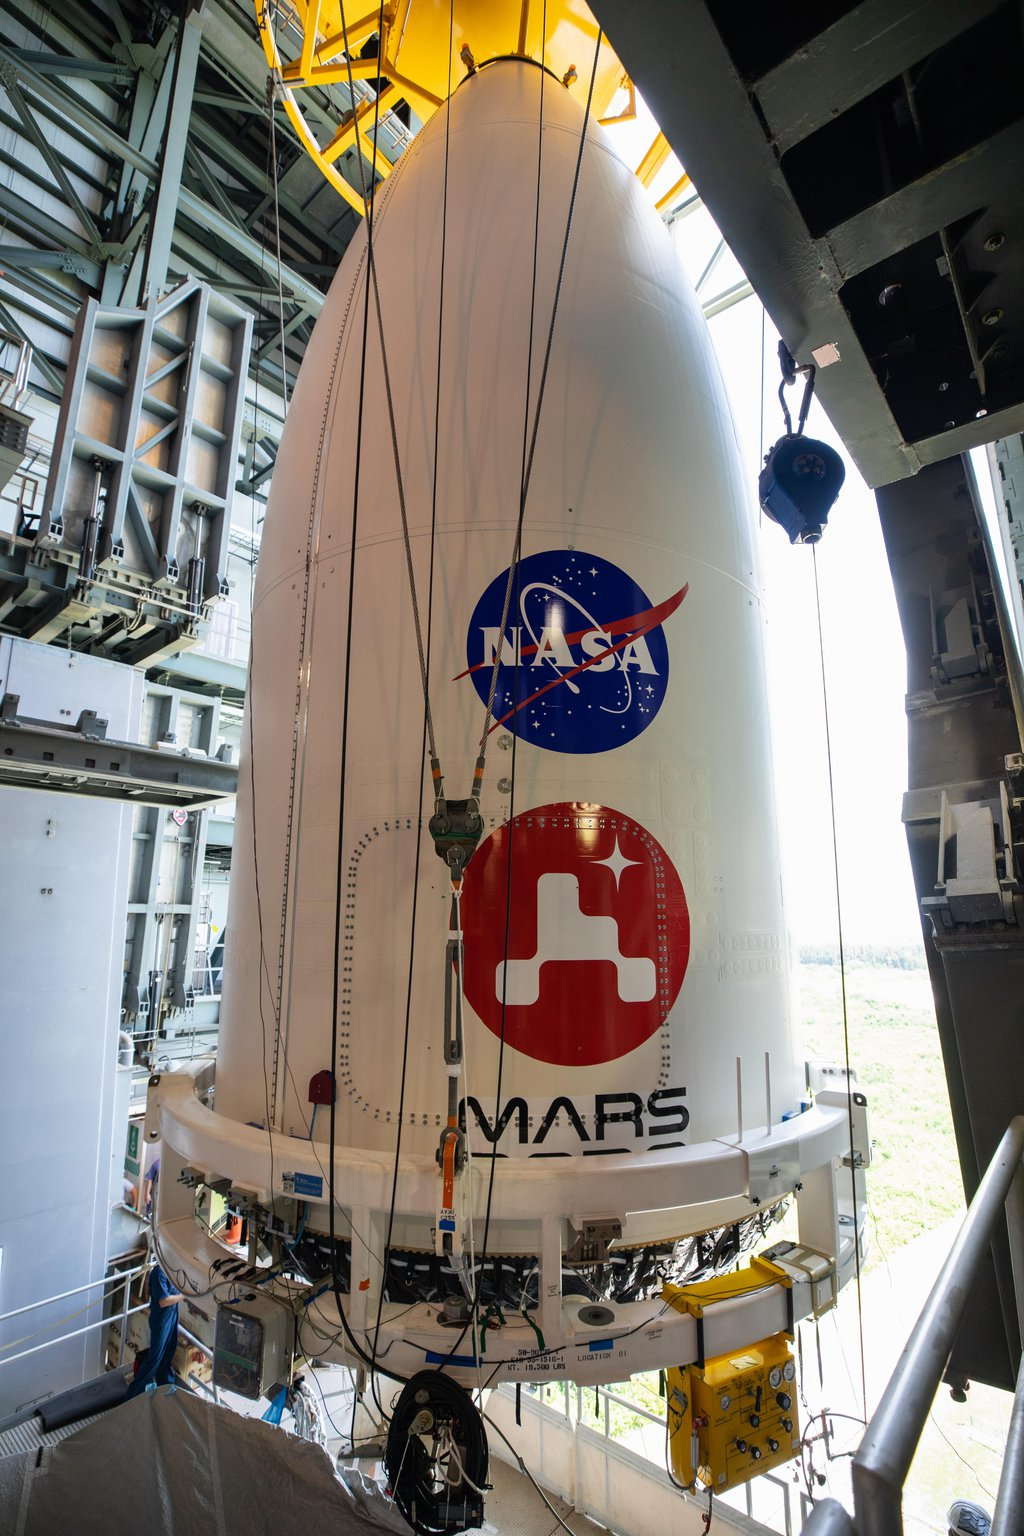 The nose cone containing NASA's Mars 2020 Perseverance rover is maneuvered into place atop its Atlas V rocket. The image was taken at Cape Canaveral Air Force Station in Florida on July 7, 2020.